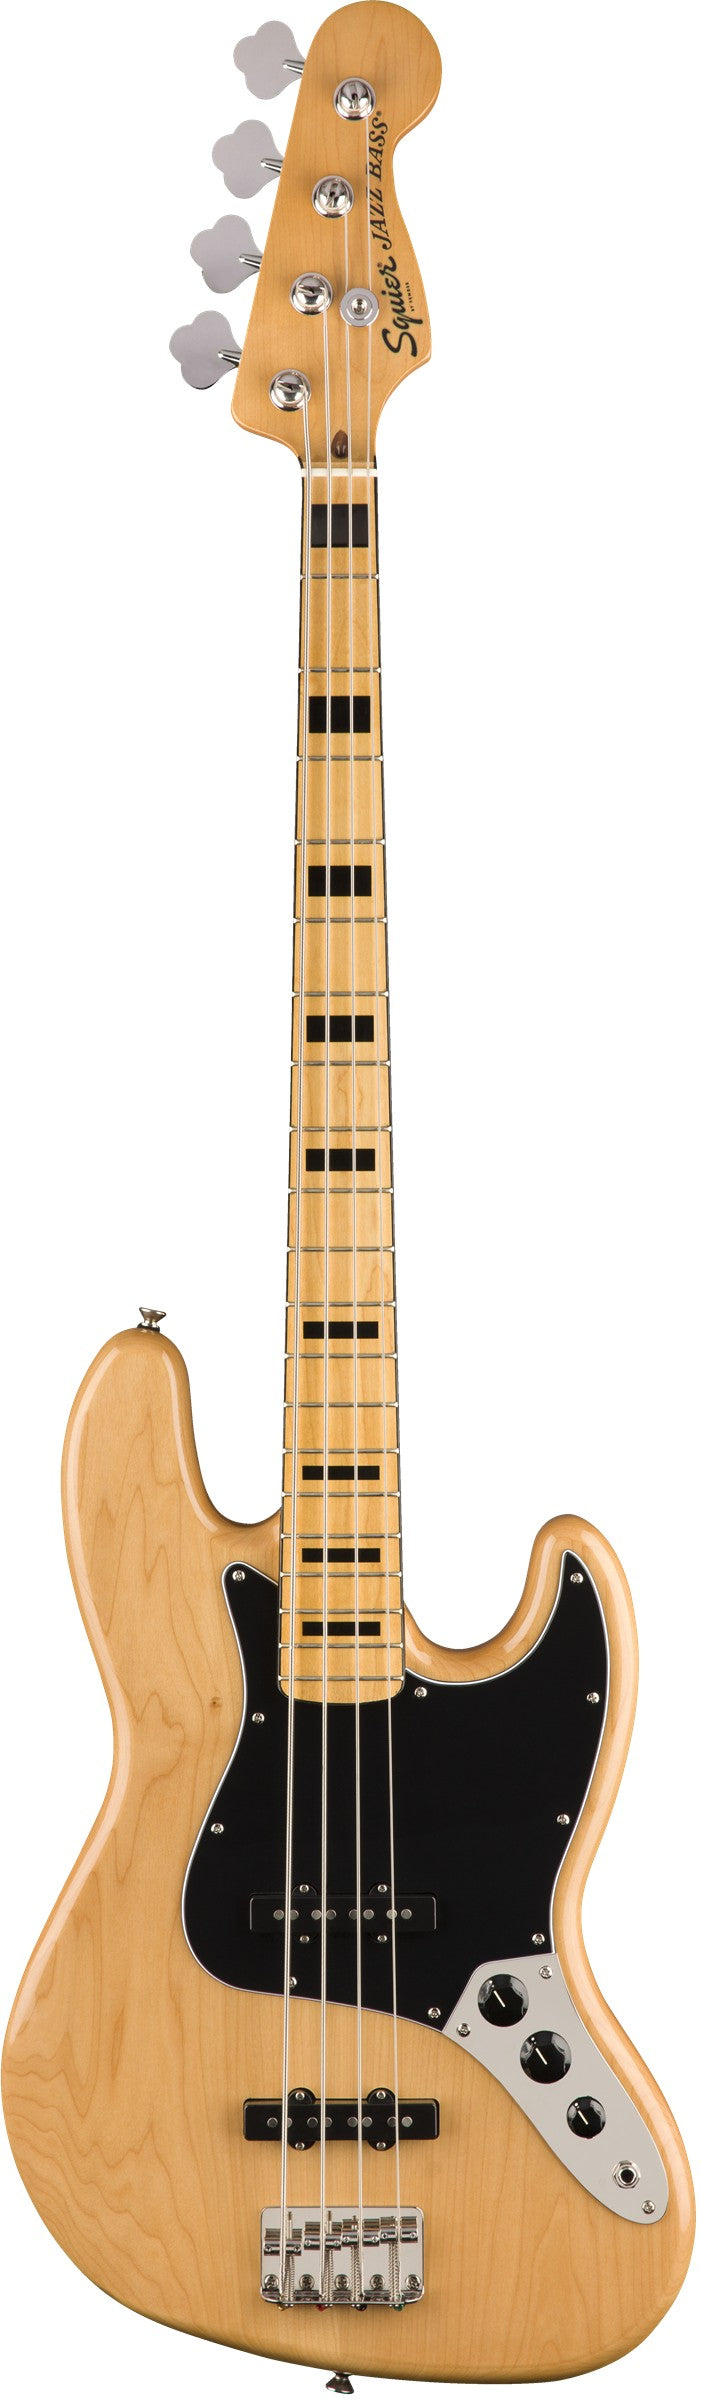 Squier Classic Vibe '70S Jazz Bass, Maple Fingerboard